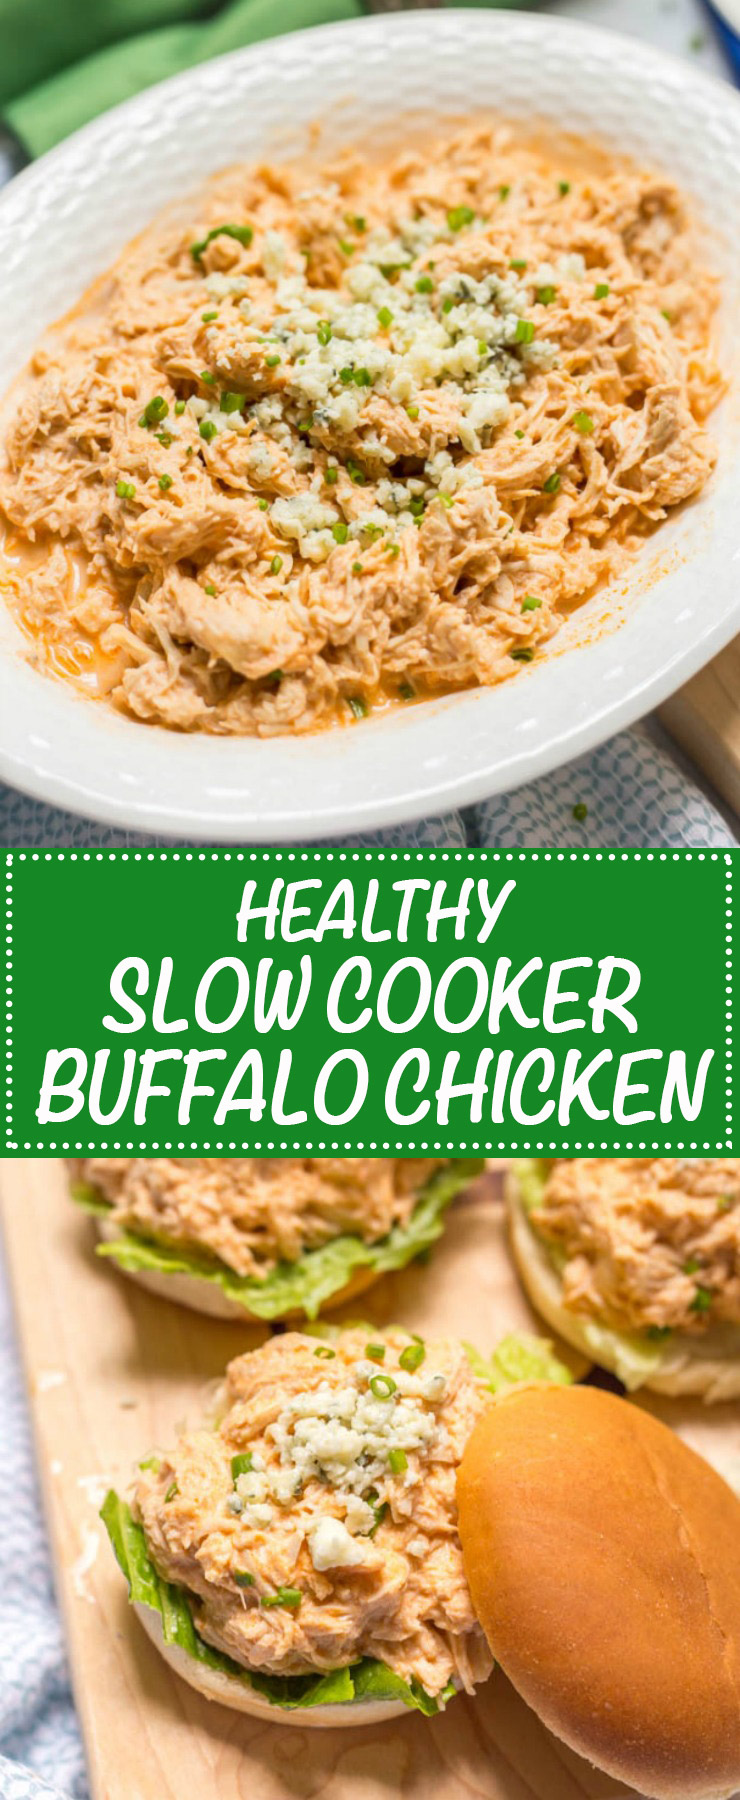 Healthy slow cooker buffalo chicken is lightened up (no butter!), takes just minutes to prep and can be used for sandwiches, sliders, wraps, salads or nachos!